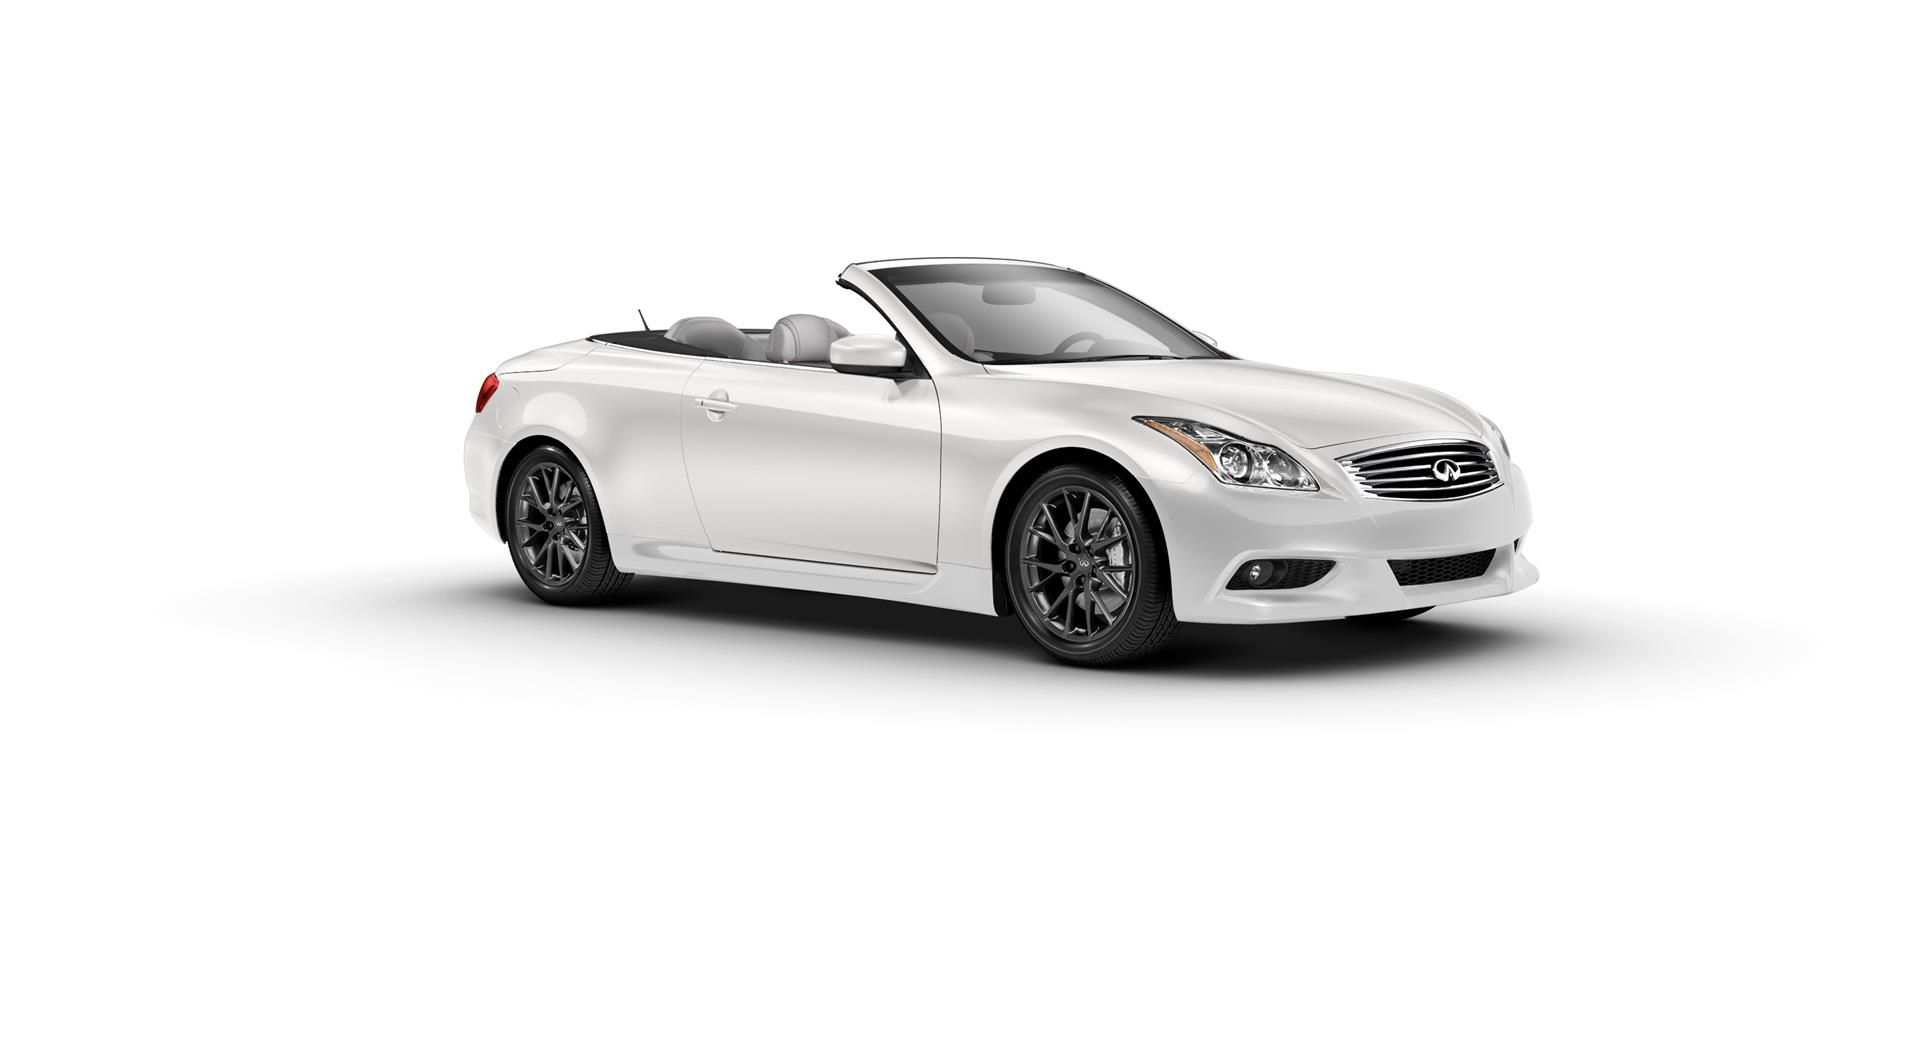 36 A 2020 Infiniti Q60 Coupe Ipl Price And Release Date